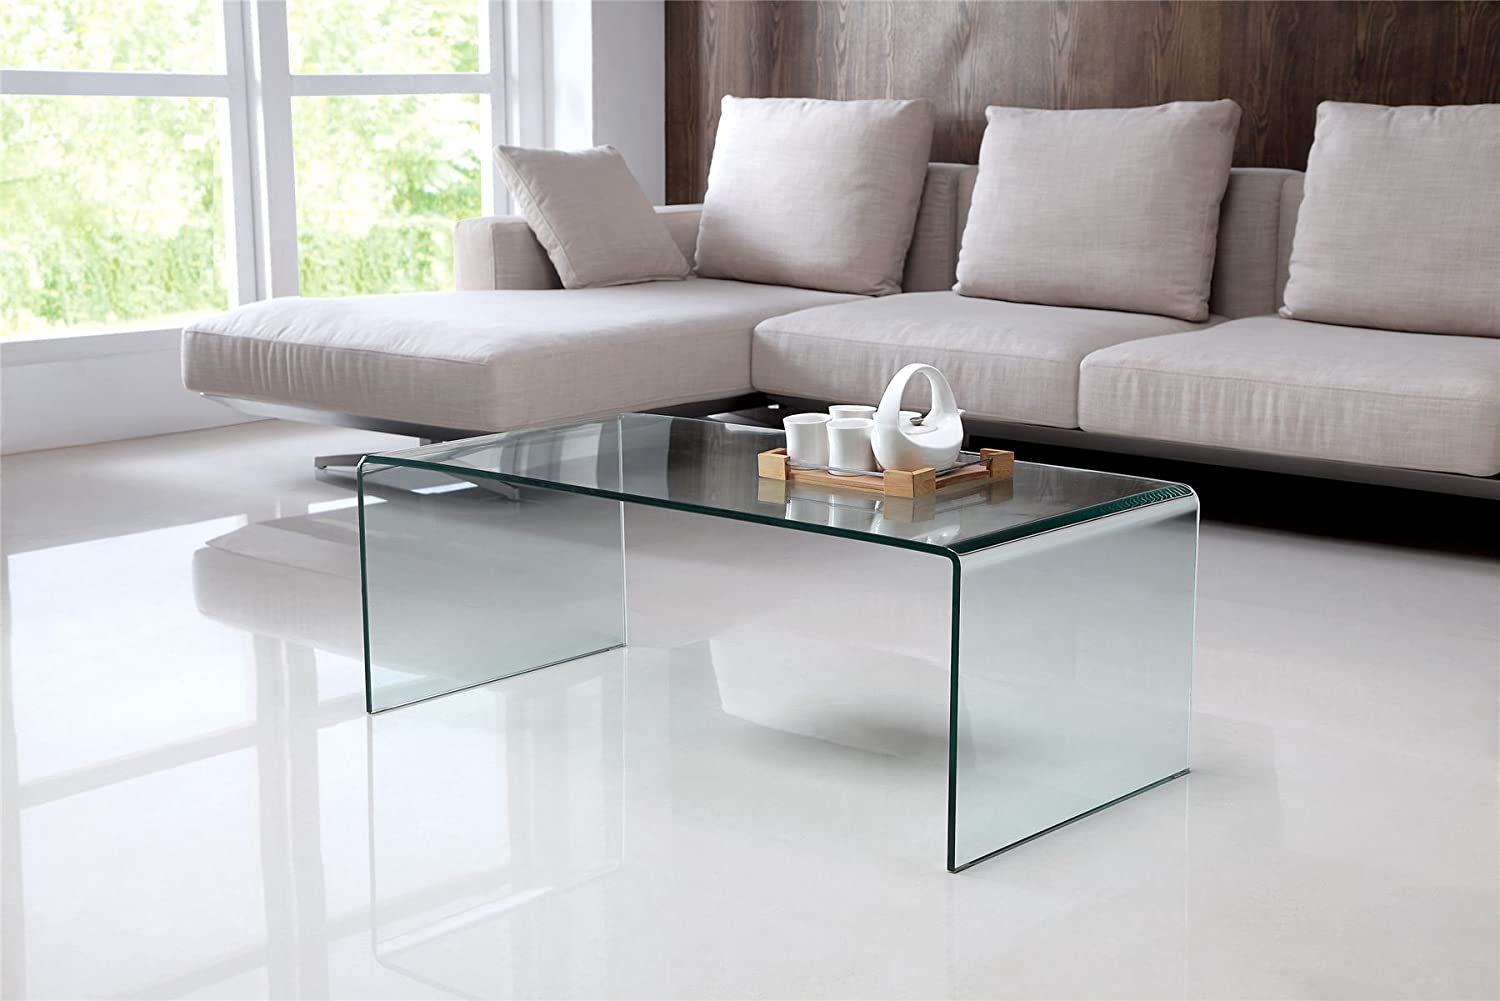 Long Clear Bent Glass Coffee Table Amazoncouk Kitchen Home